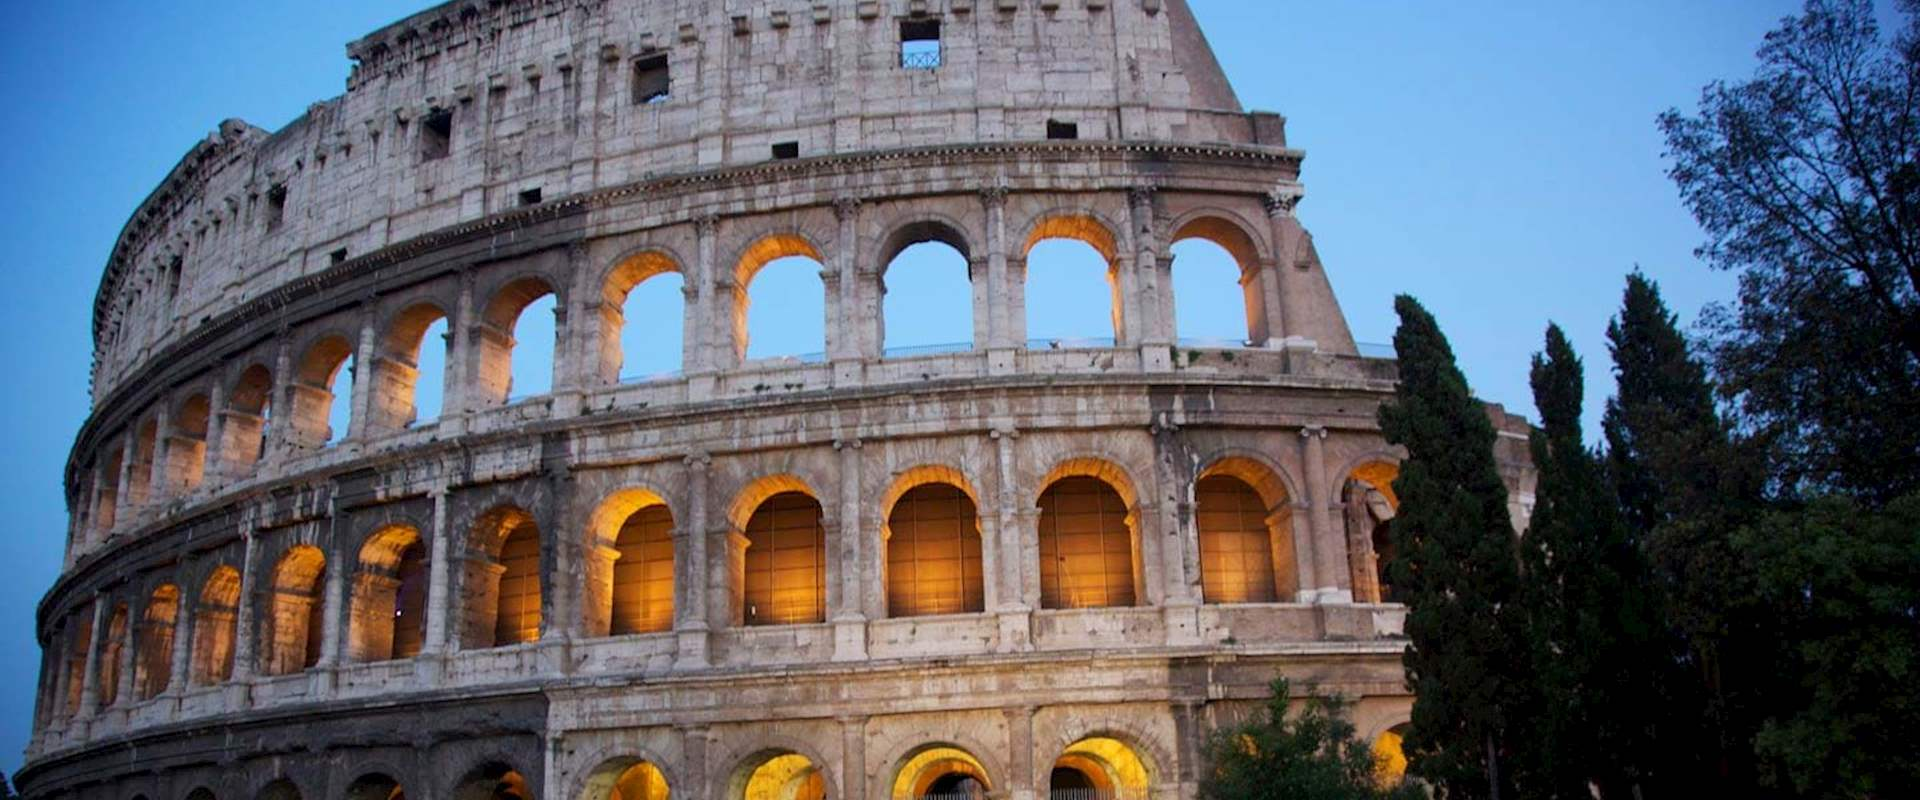 Colosseum Night Tour Amp Ticket Expert Guides City Wonders